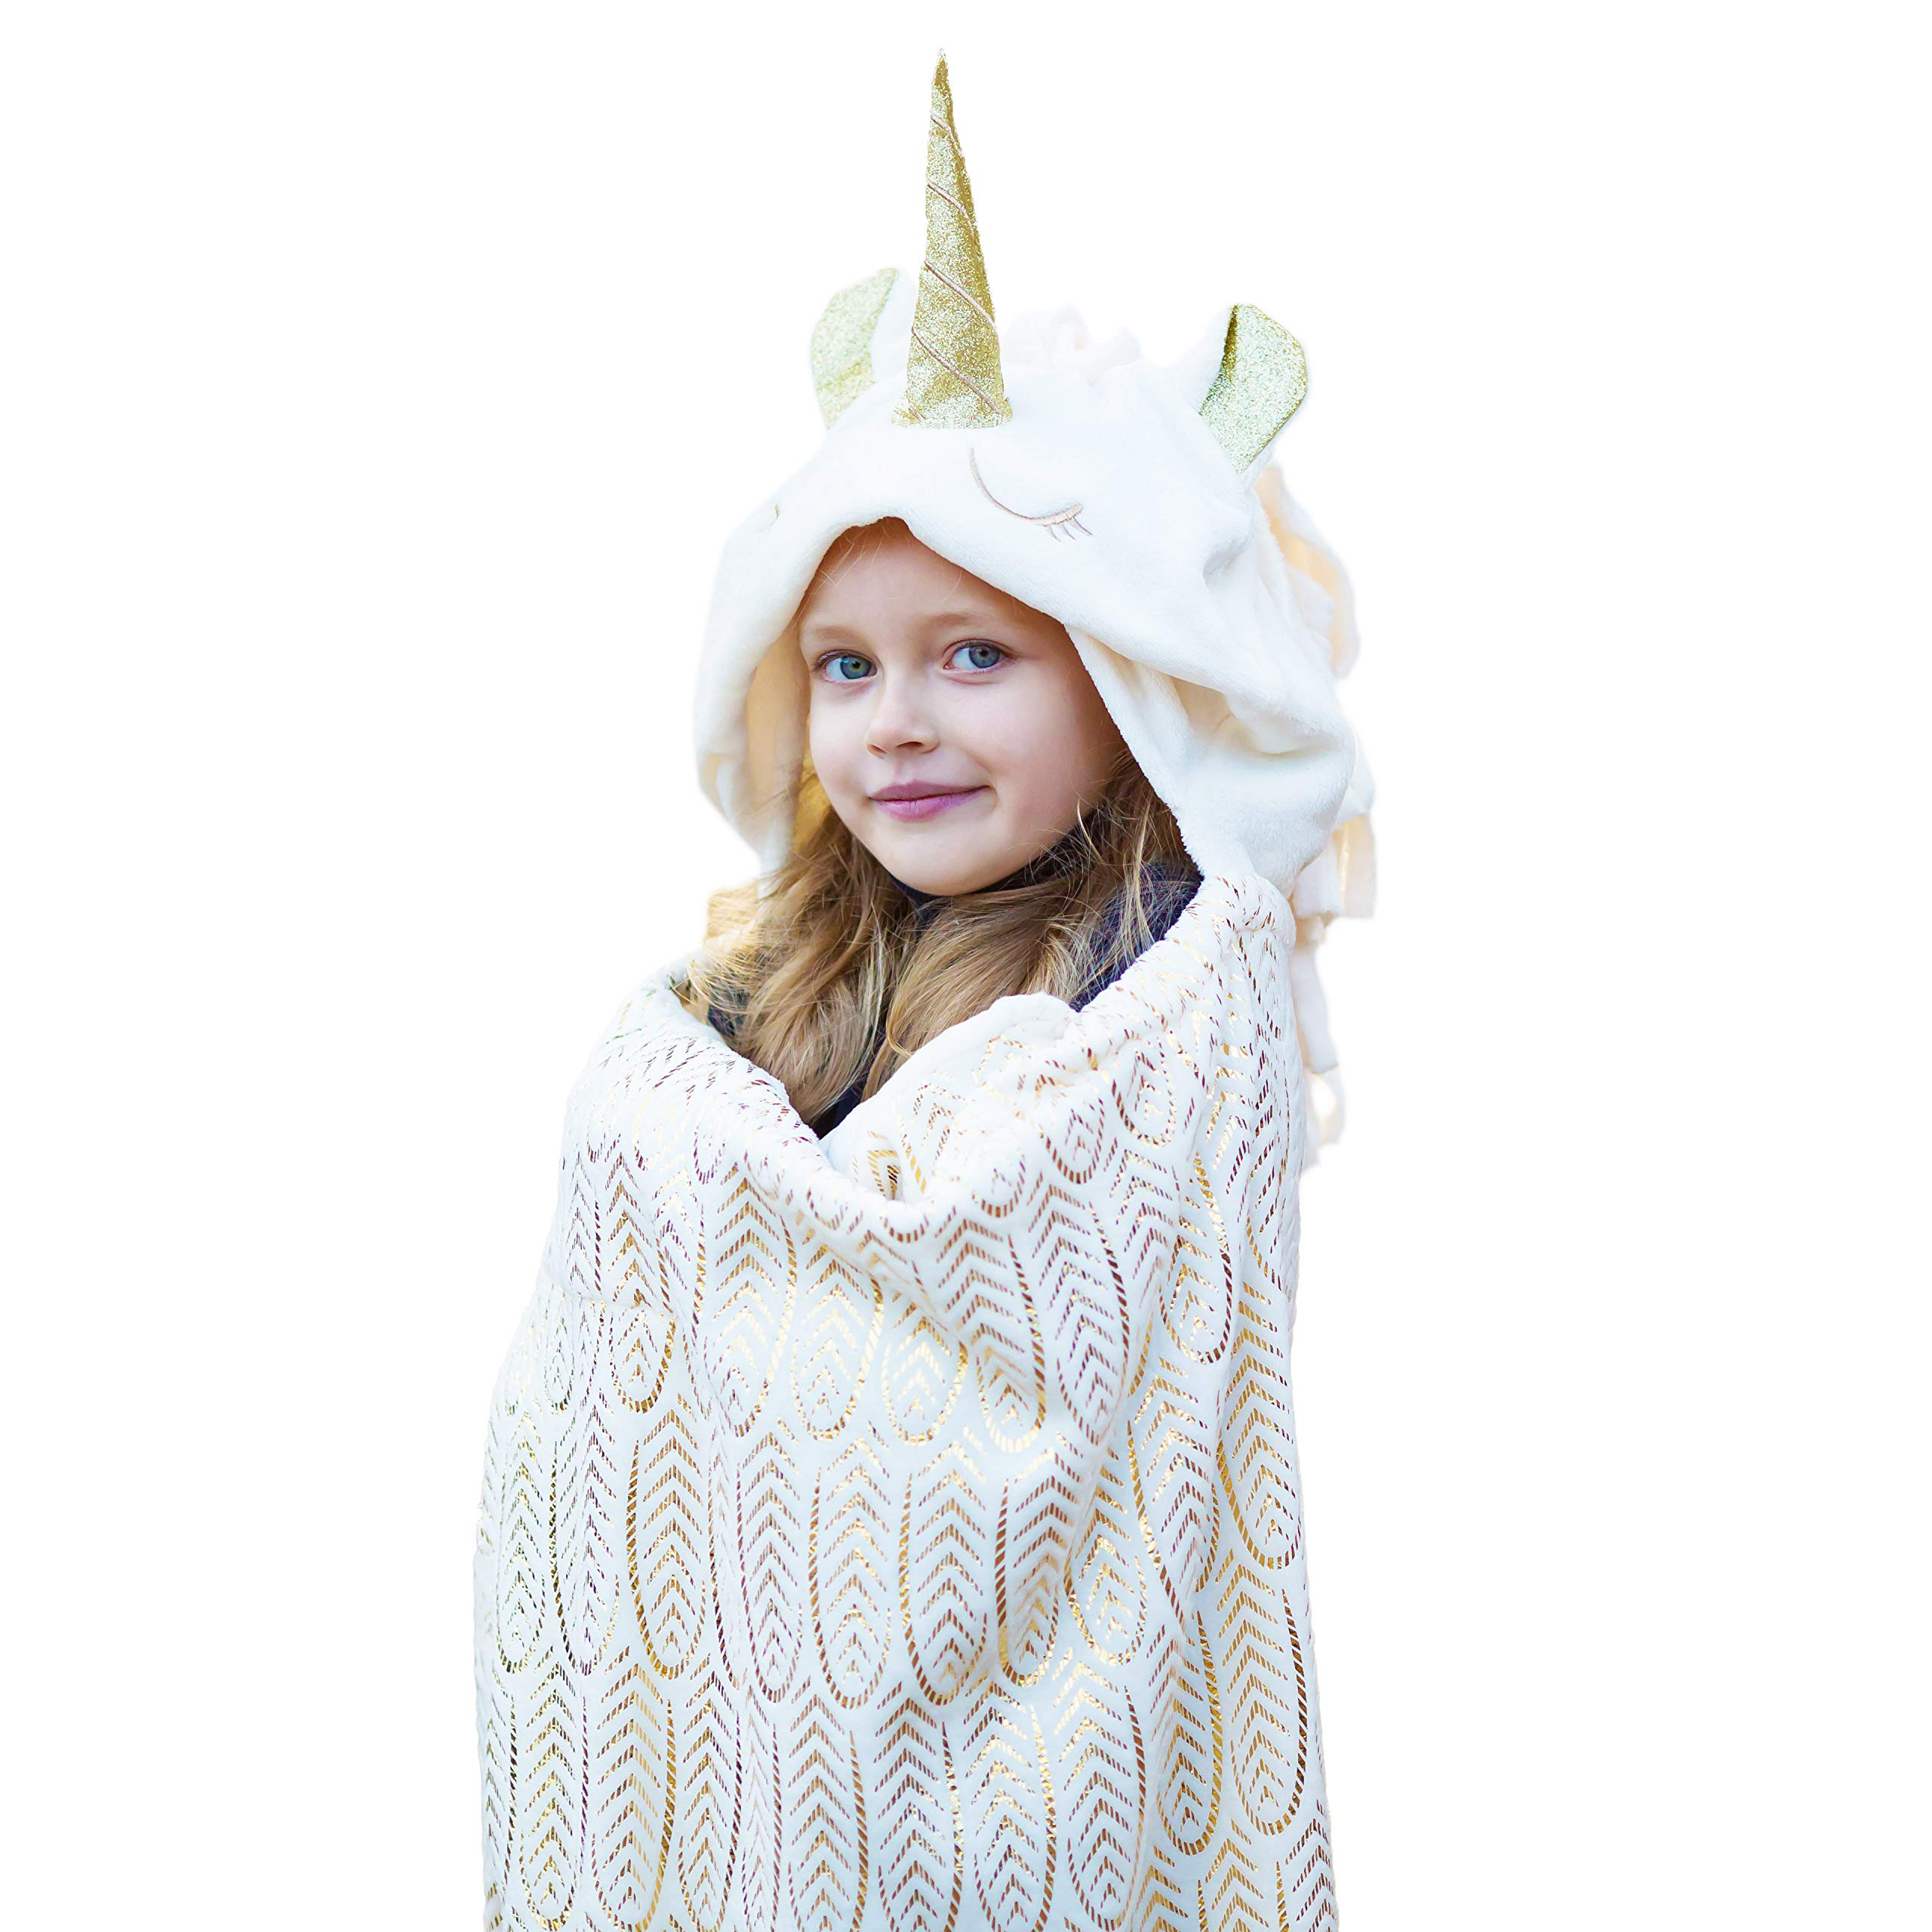 Hooded Unicorn Blanket for Girls & Adults - Kids Large Soft Plush Wearable Hoodie Bankets - Comfortable Animal Hood Throw Wrap Unicorn Cloak with Shimmering Horn & Gold Foil Design for Play & Sleep by DreamsBe